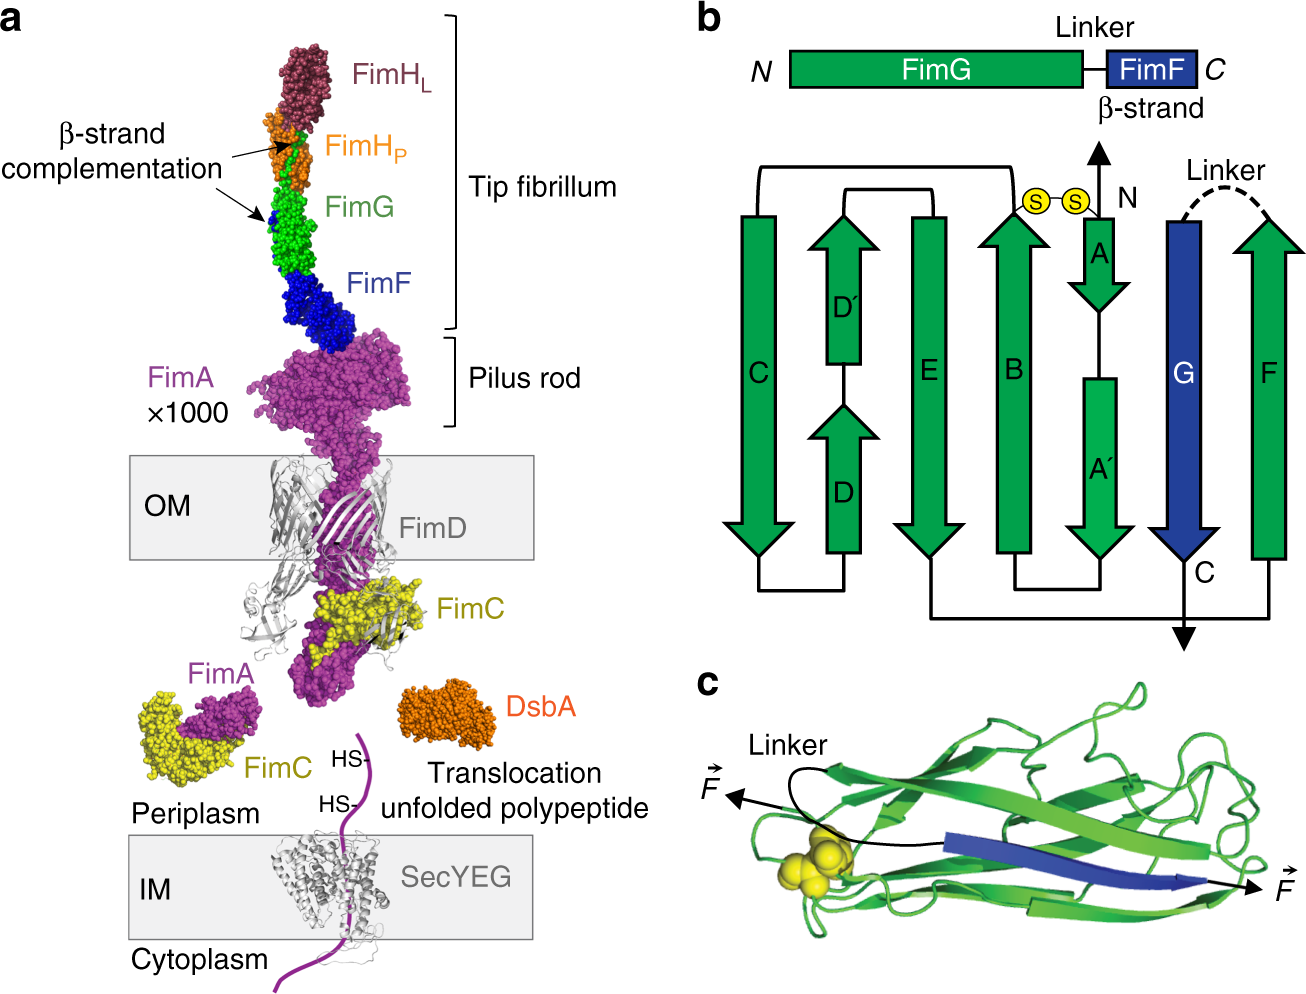 mechanical architecture and folding of e coli type 1 pilus Series and Parallel Circuits Diagrams